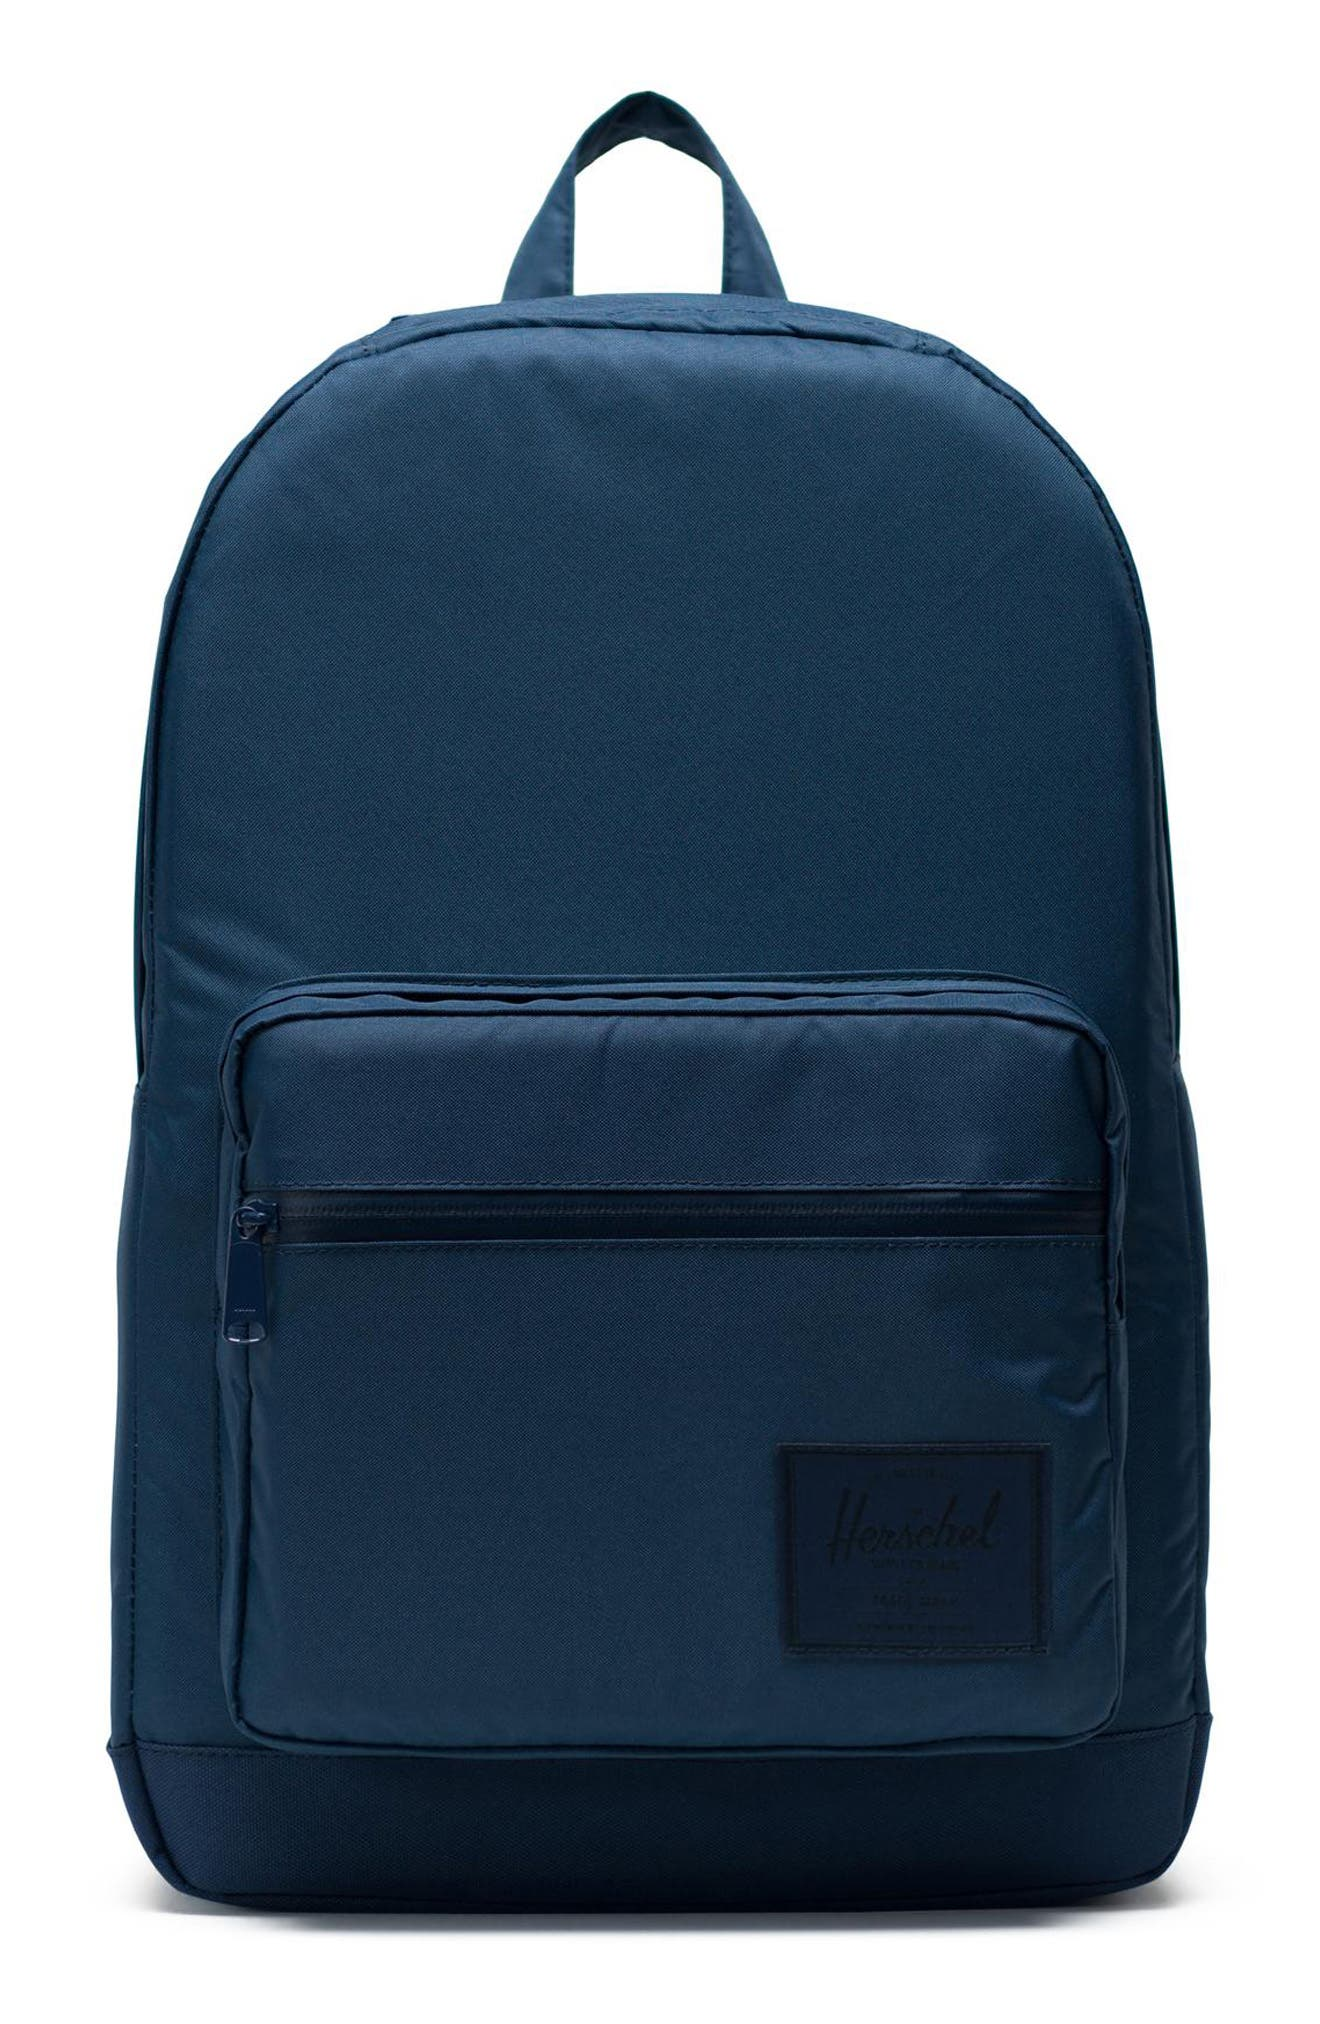 Herschel Supply Co. Pop Quiz Light Backpack - Blue